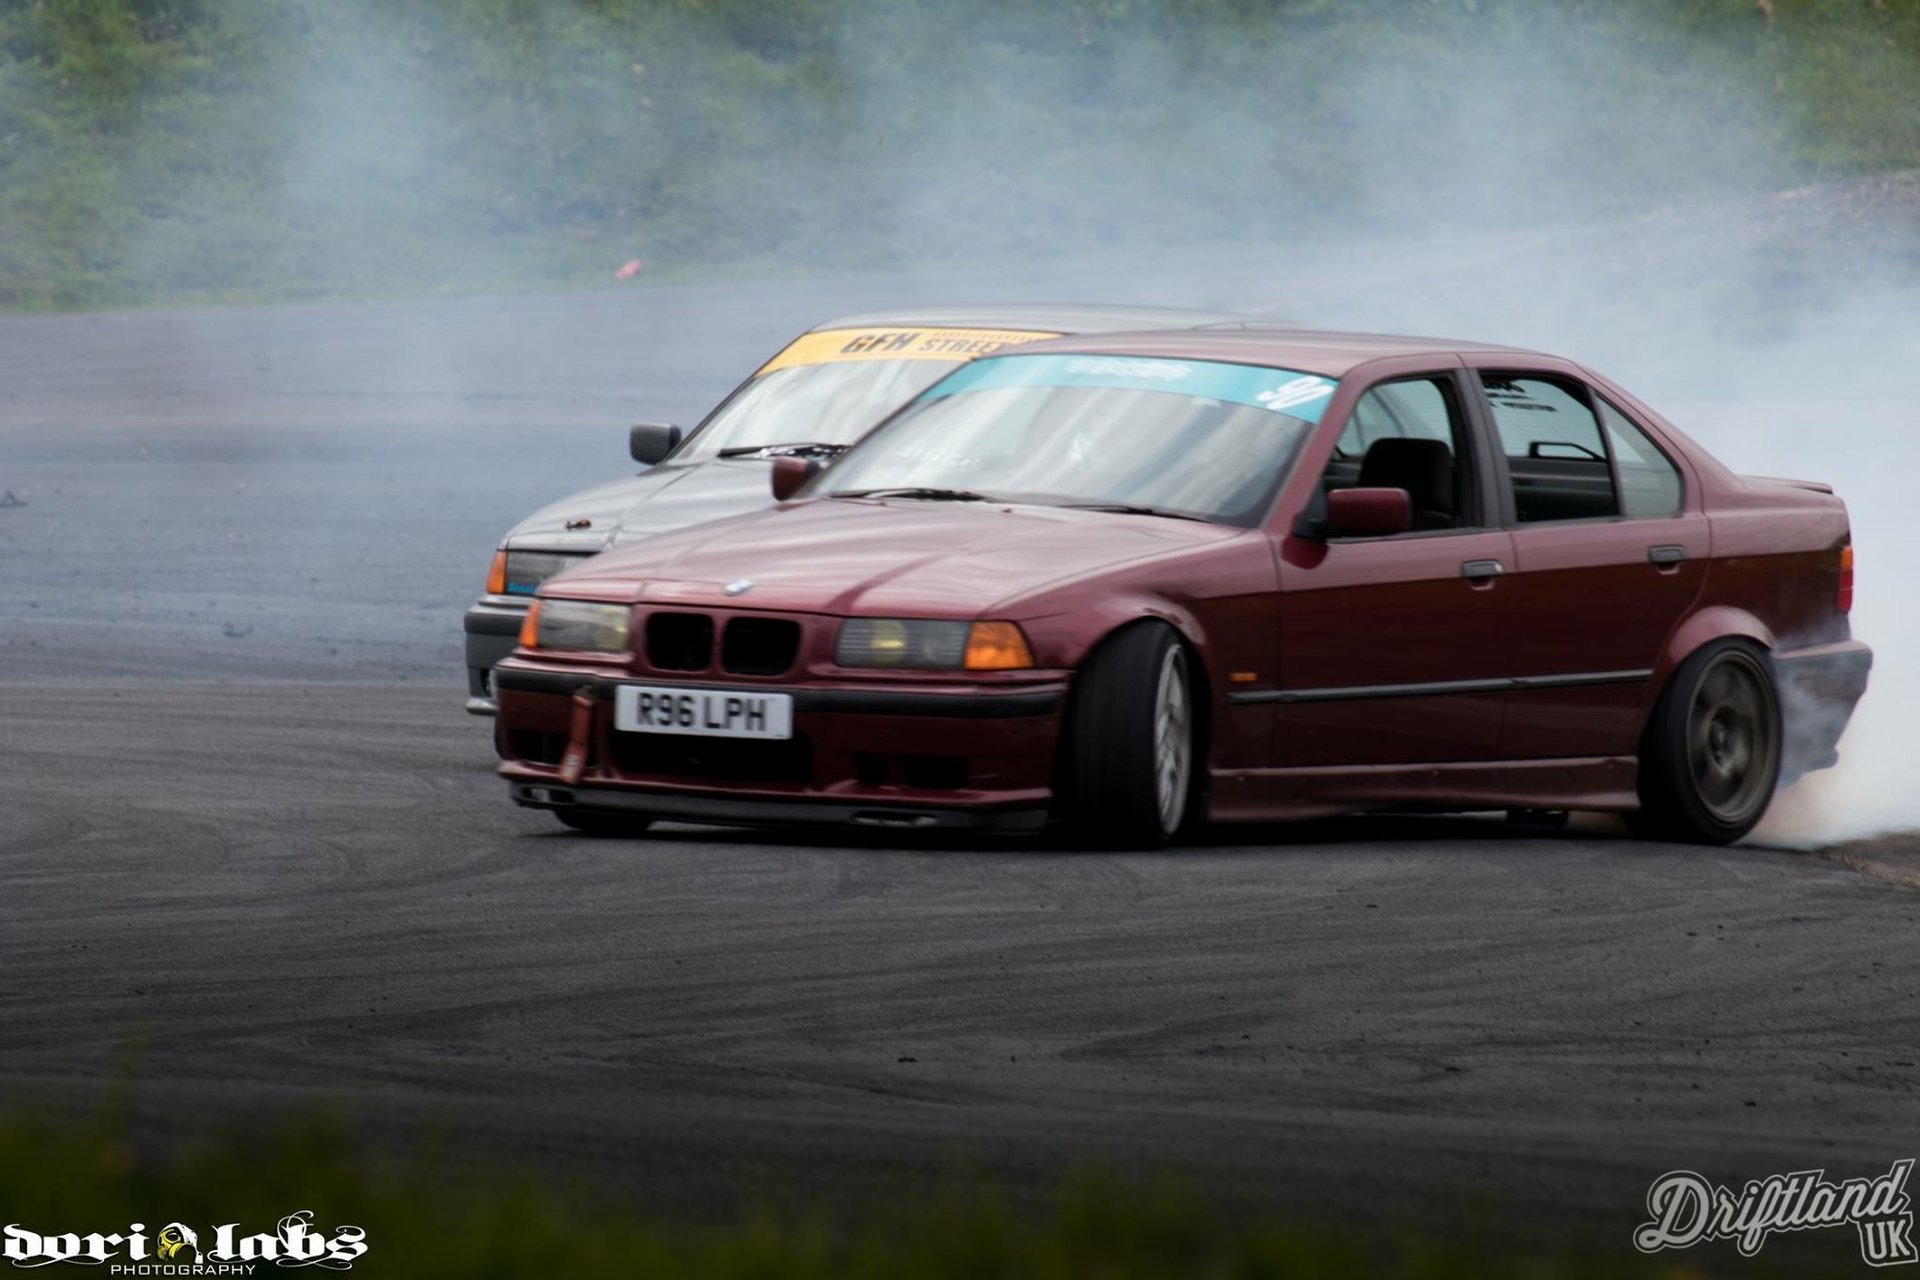 For Sale Ralph Bmw E36 328i Saloon Driftworks Forum